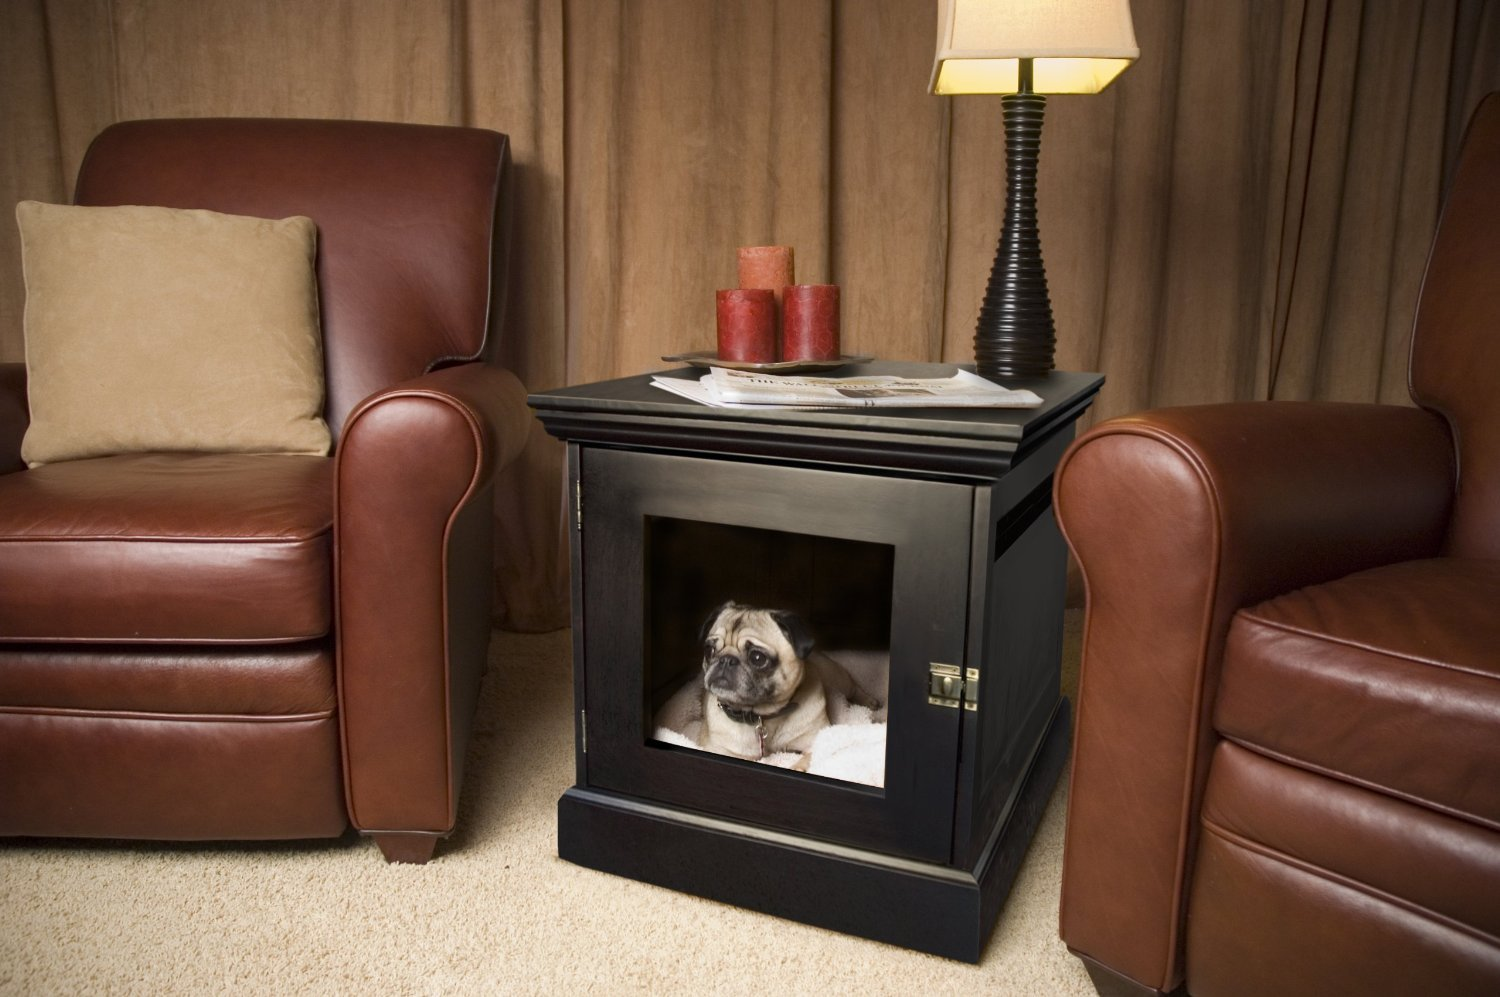 Amazon denhaus townhaus indoor dog house and end table amazon denhaus townhaus indoor dog house and end table espresso large pet crates pet supplies geotapseo Image collections